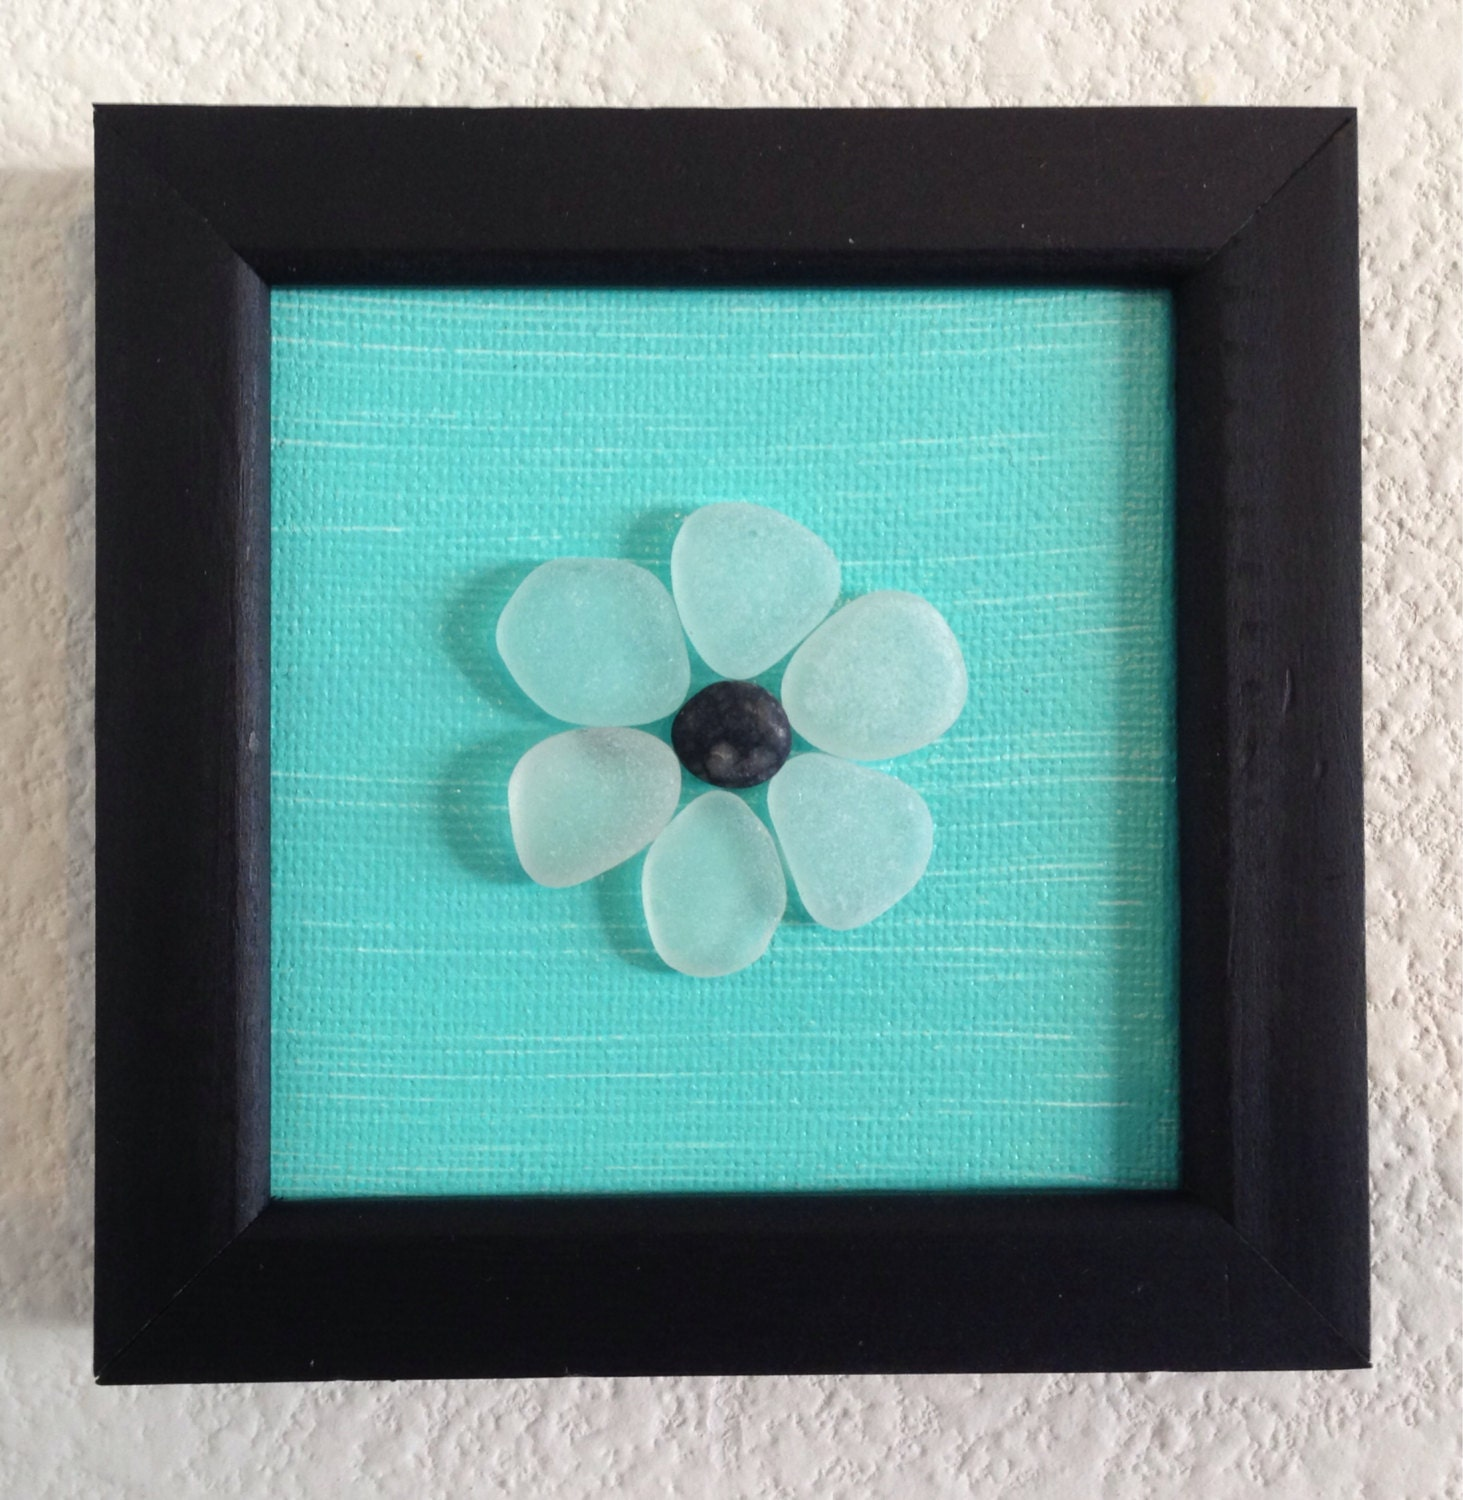 Wall Art Glass Framed : Sea glass art pebble canvas framed acrylic